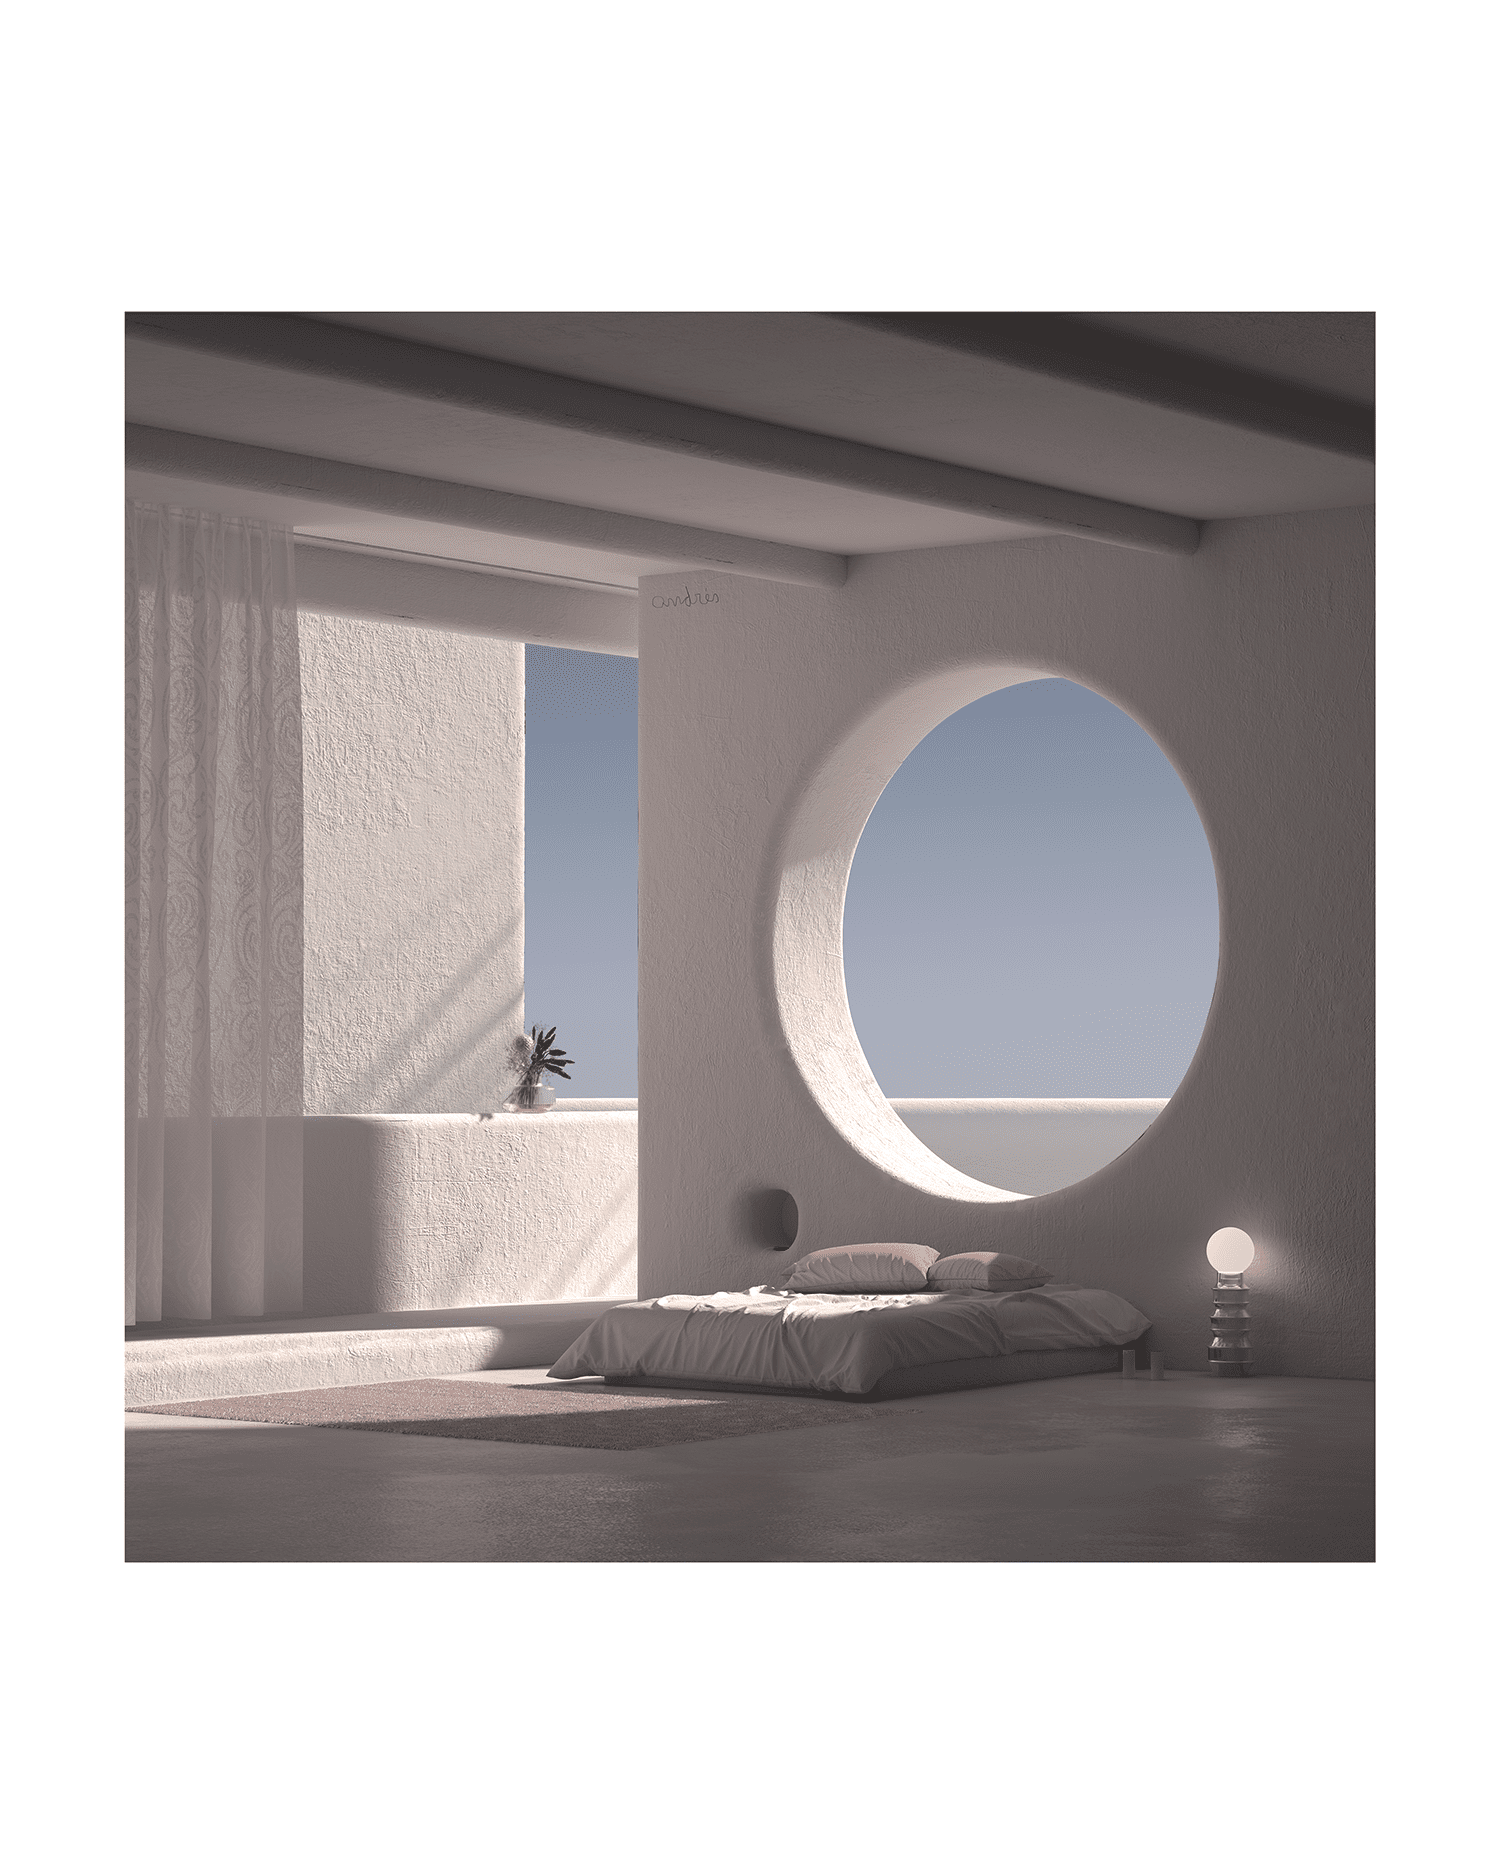 Photo of an open room with a bed on the floor and large circular window.